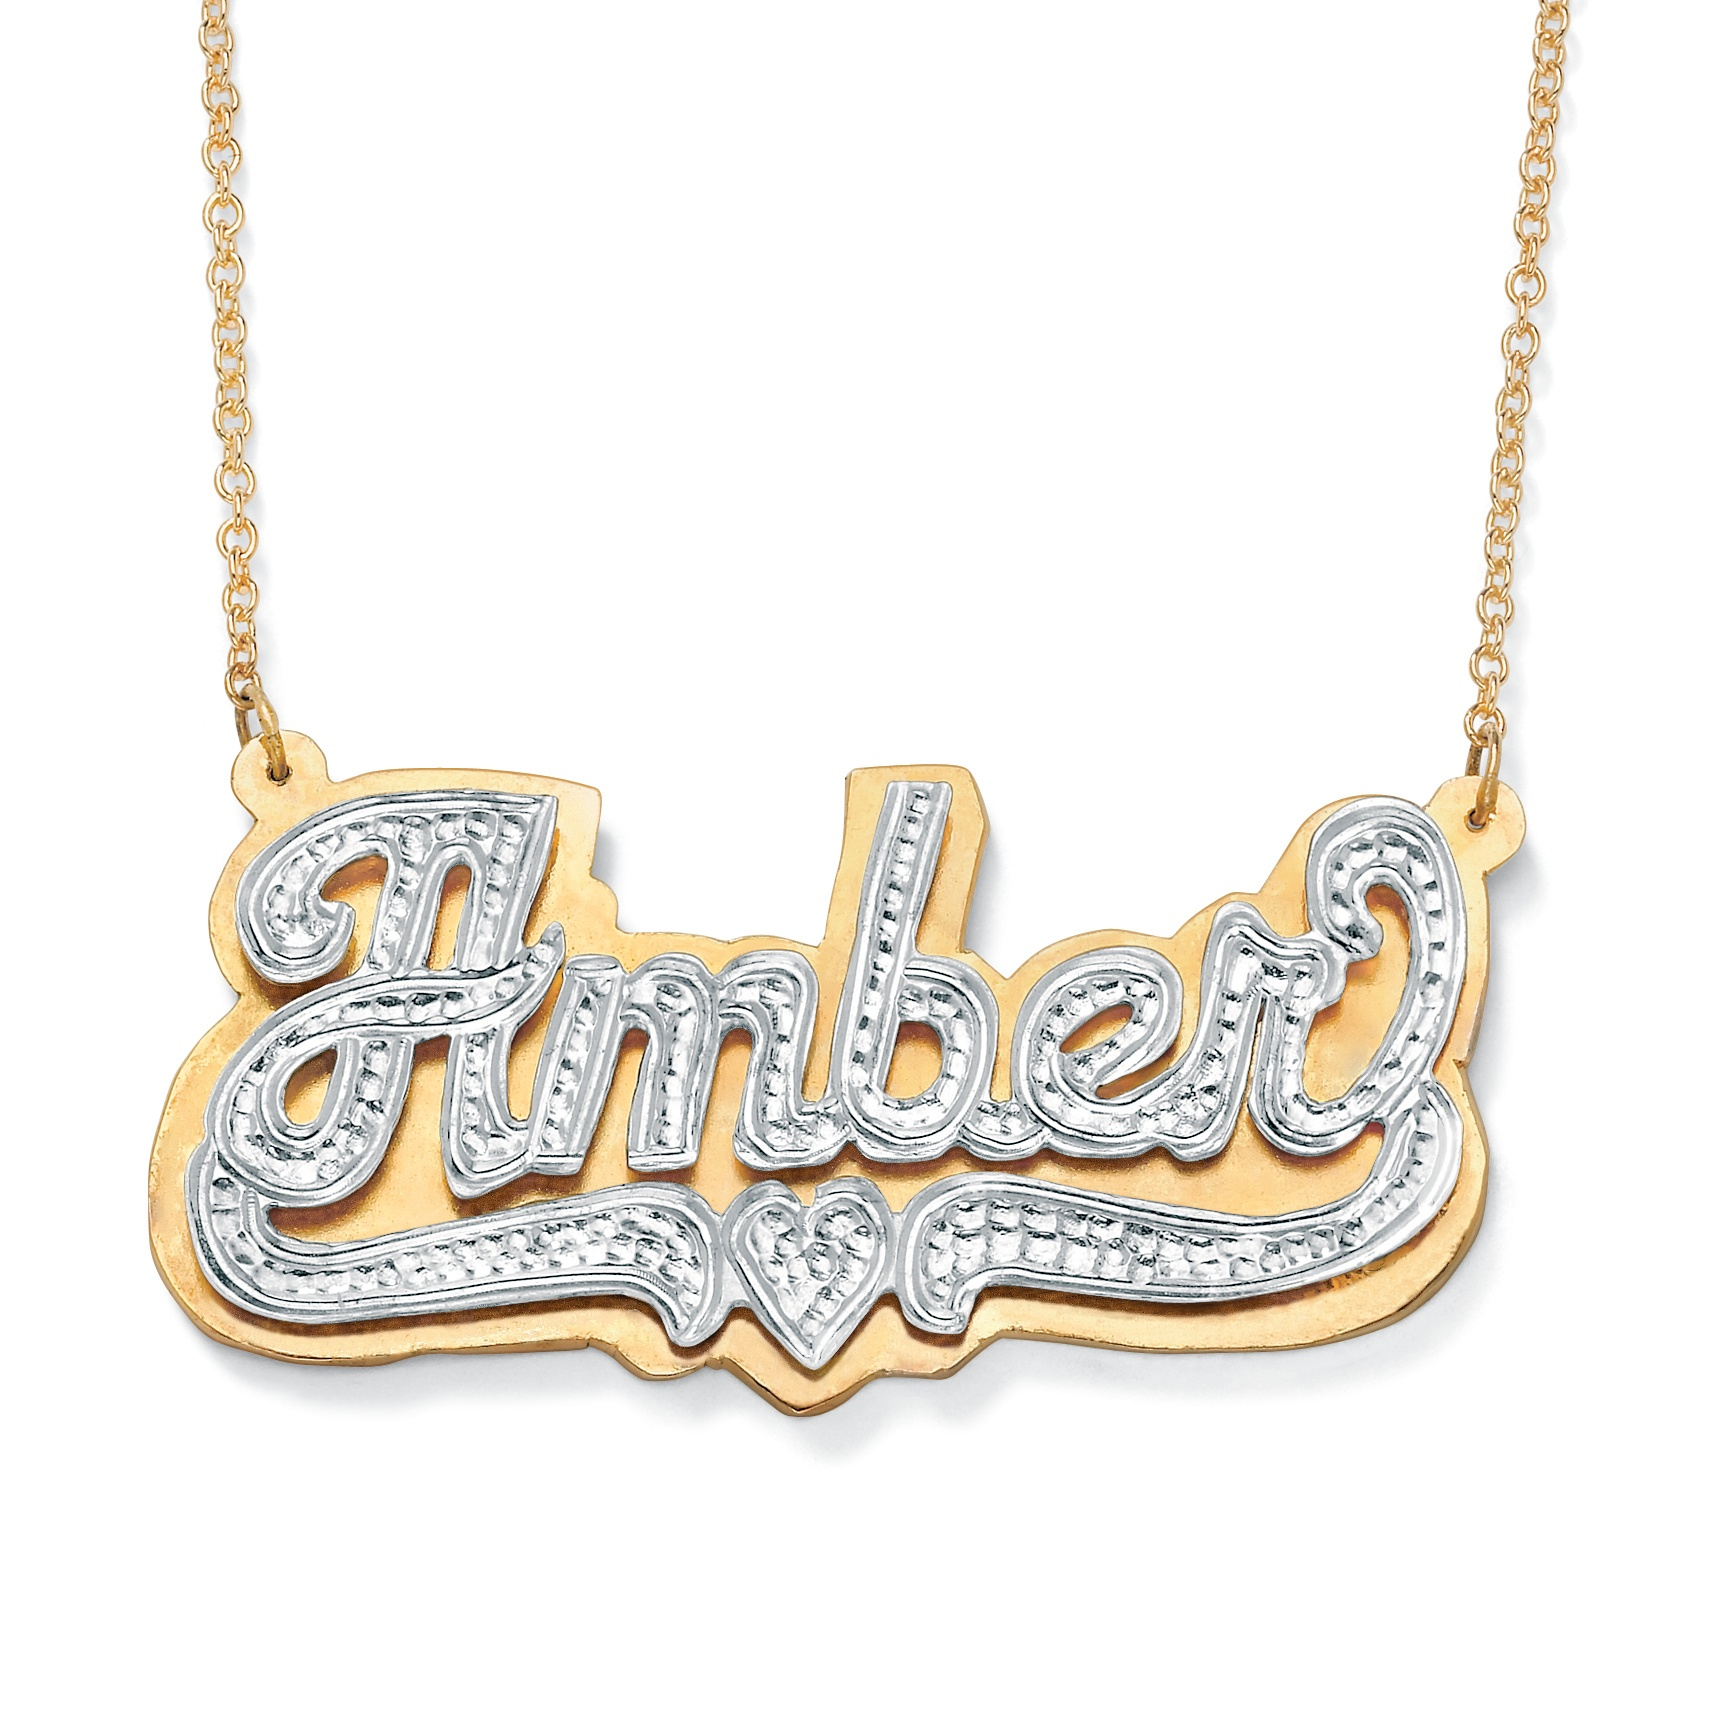 Personalized Heart Nameplate Necklace In 18k Gold Over